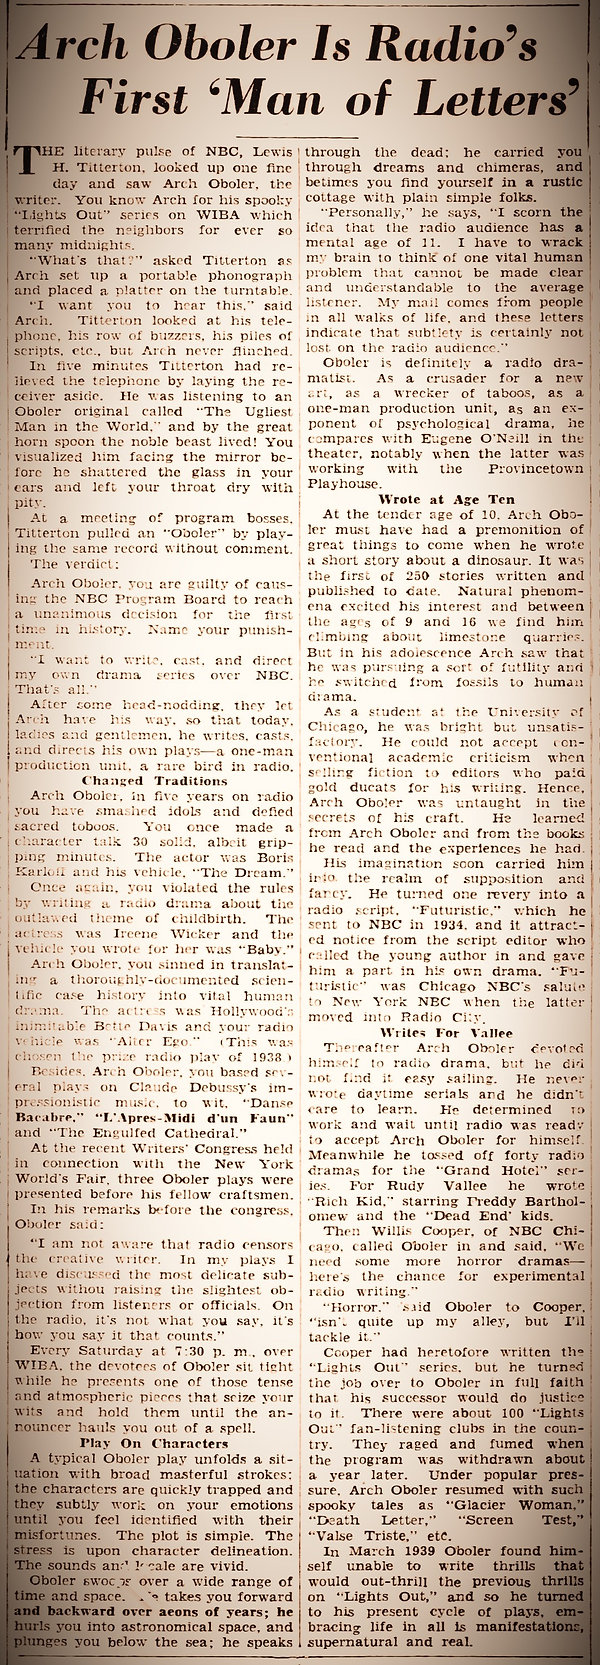 1939 Arch Oboler Man of Letters article